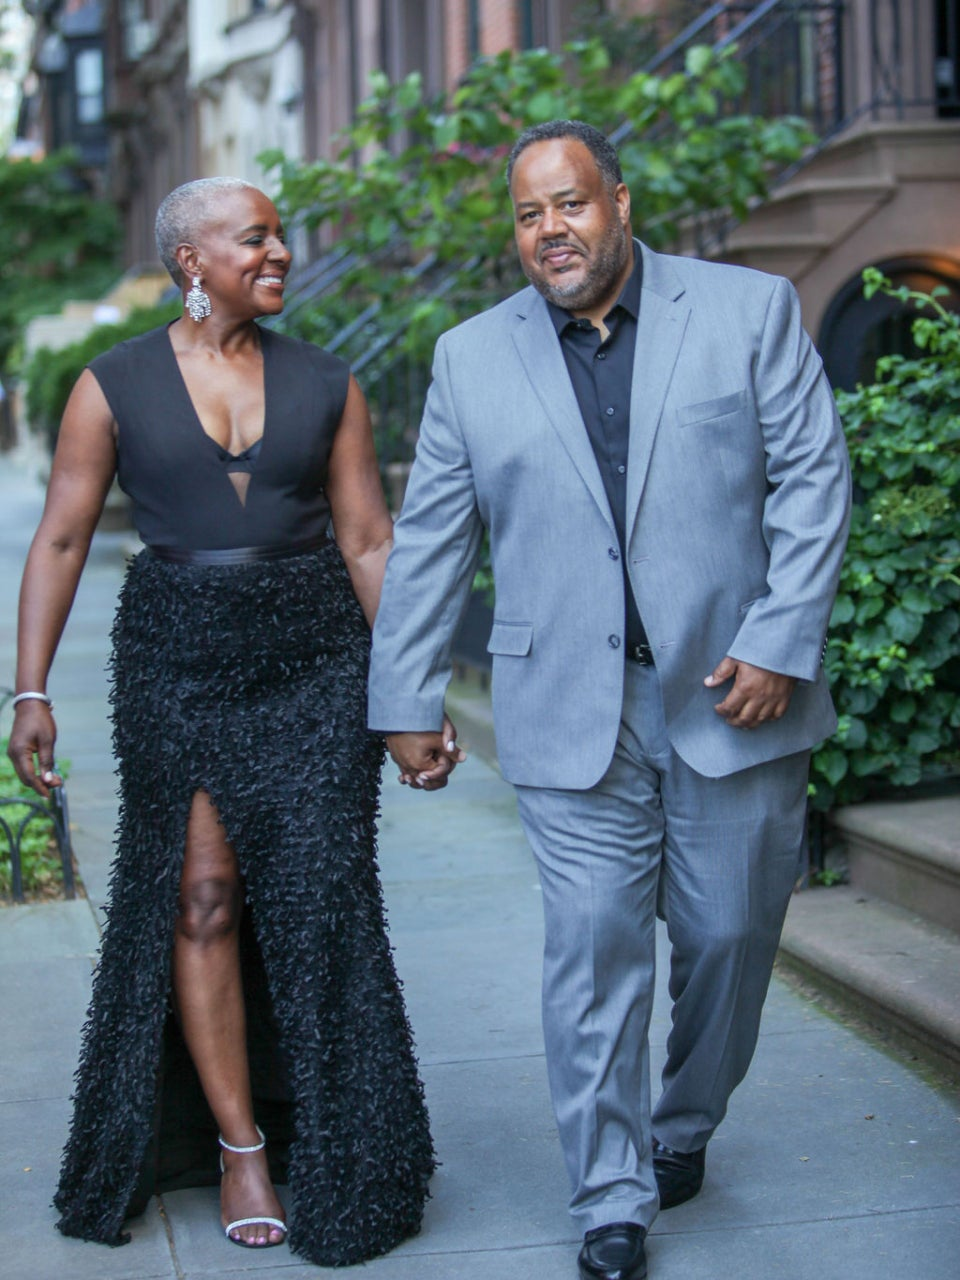 These Childhood Pals Found True Love After 50 and Are Sharing Their Story To Inspire Others To Believe